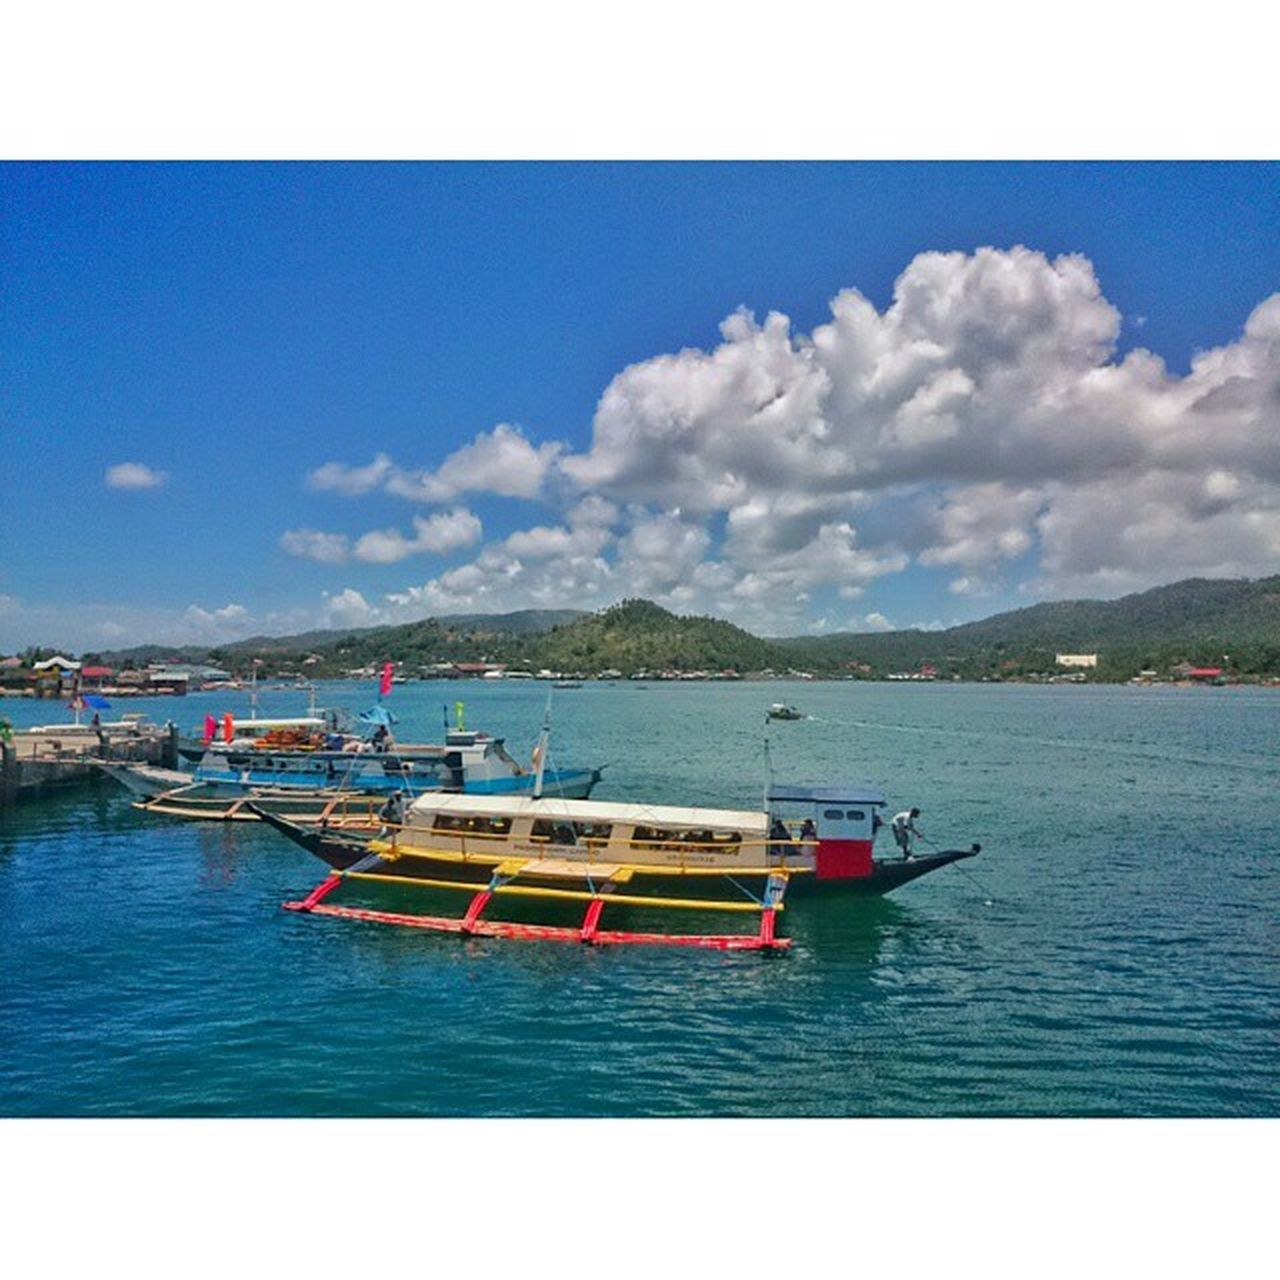 Onboard Masbateport Seatravel Vacation itsmorefuninthephilippines coolphotos planet_hd natur_photograph sonyphotography mobilephotography breathtaking worldbestshot_ig beatifulshotss theheavenplanet earth_deluxe